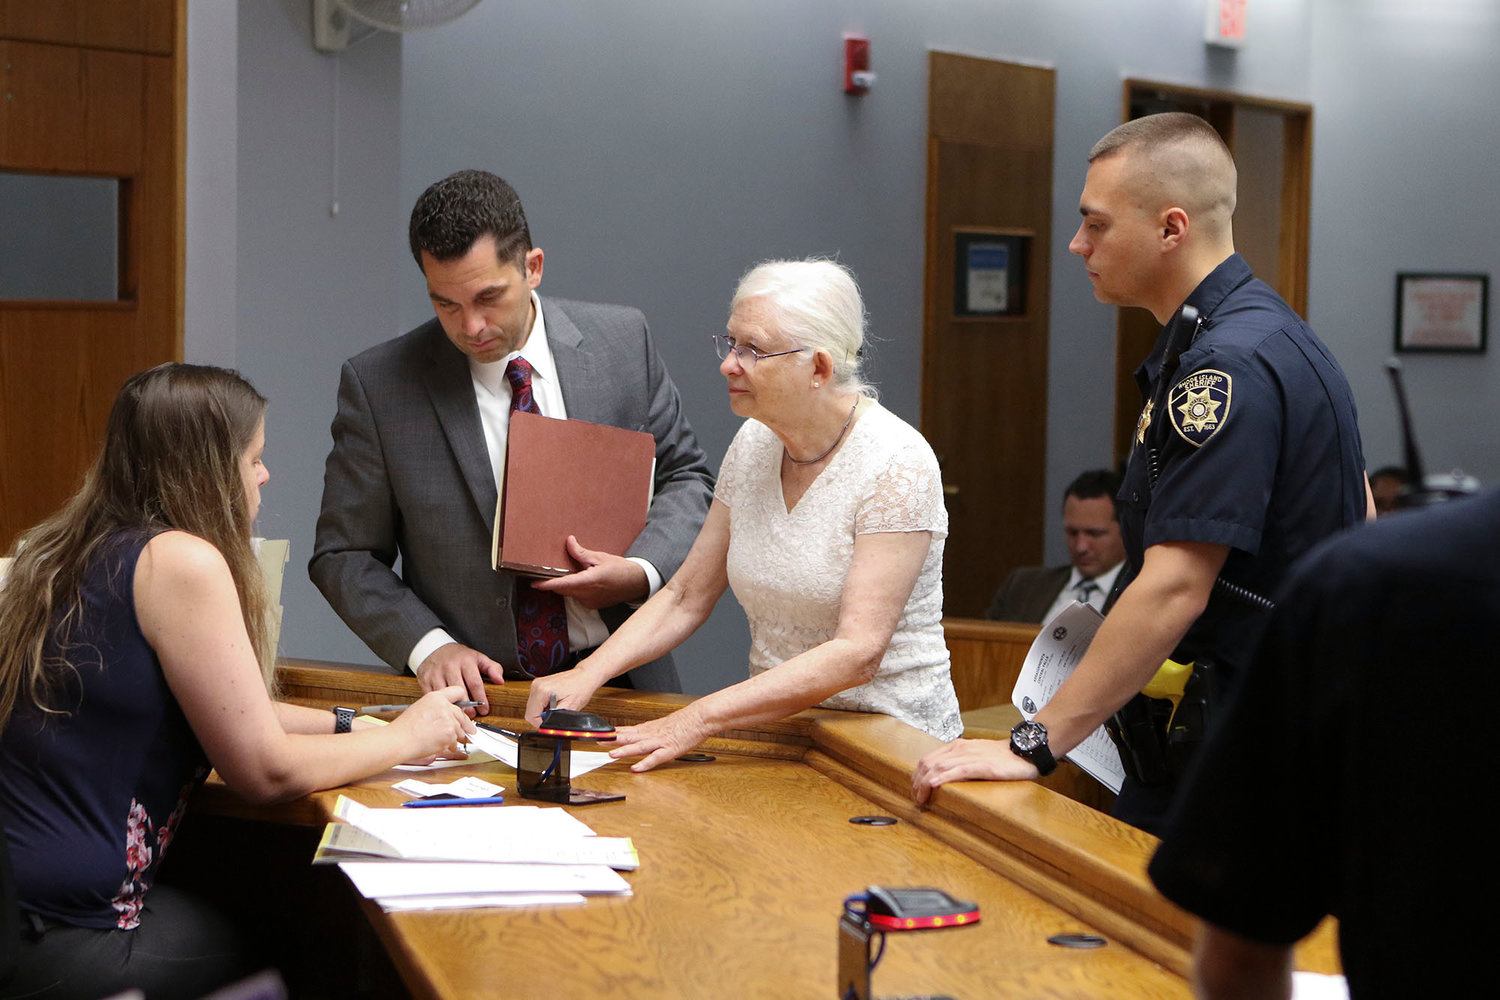 Arraignments at District Court, on Dorrance Street, after a July 2, ICE protest at the Wyatt Detention Center in Central Falls.